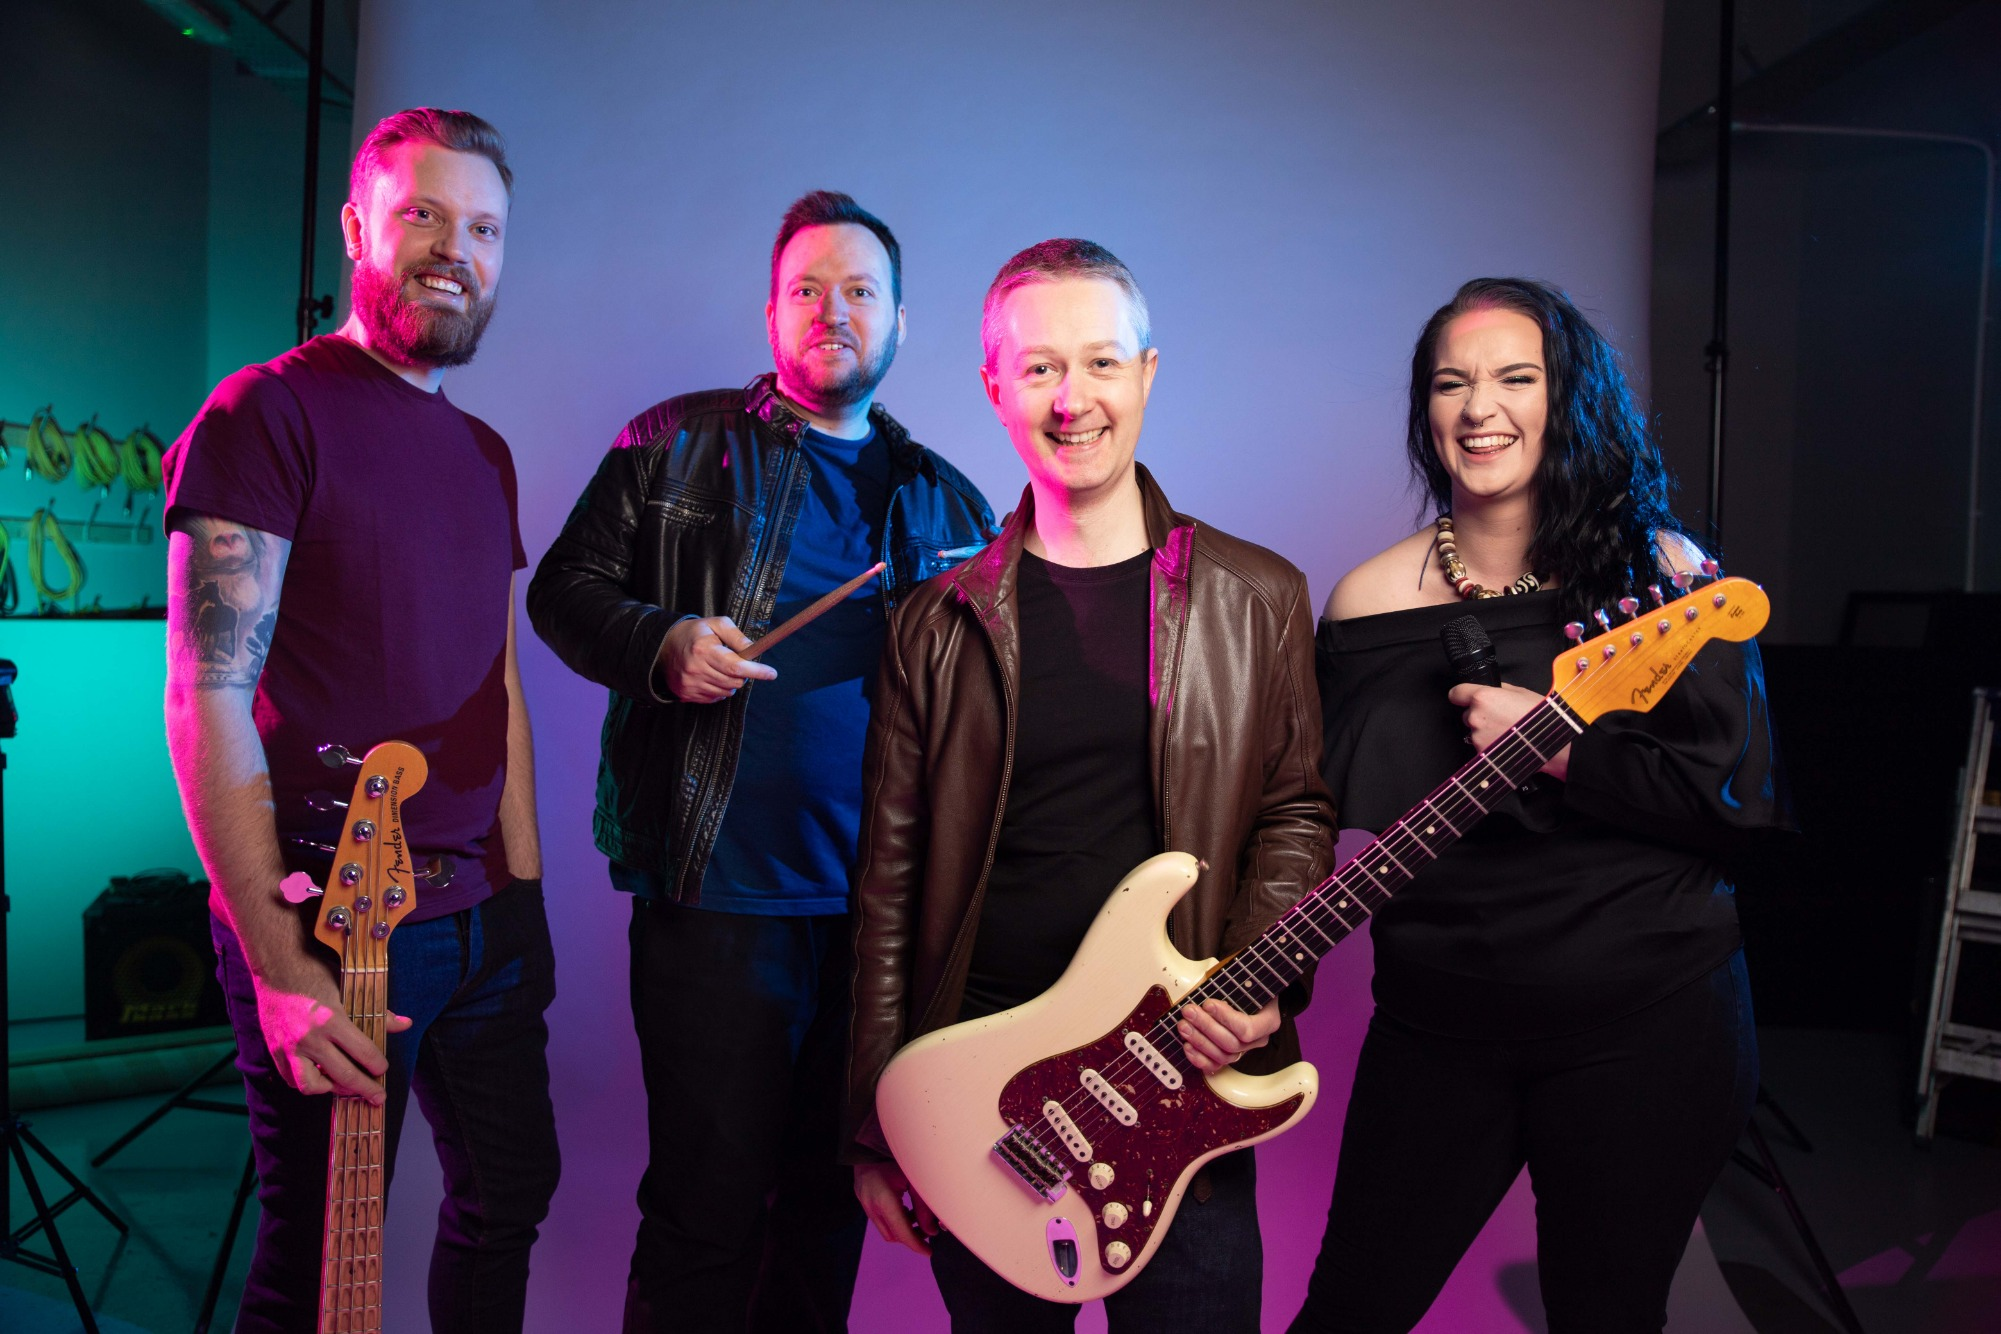 Promo The Sound Function Band Wiltshire